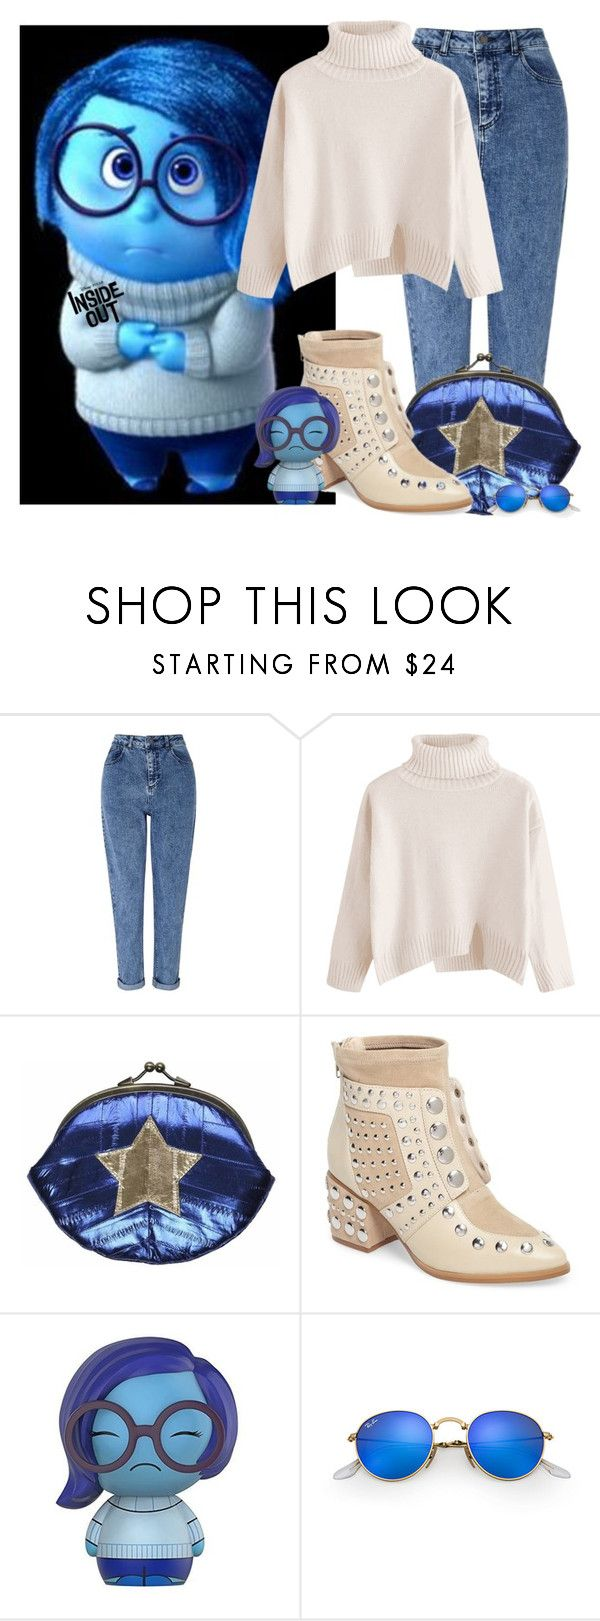 """""""Inside Out"""" by tlb0318 ❤ liked on Polyvore featuring Disney, Miss Selfridge, Maze, Cecelia New York, Funko and Ray-Ban"""